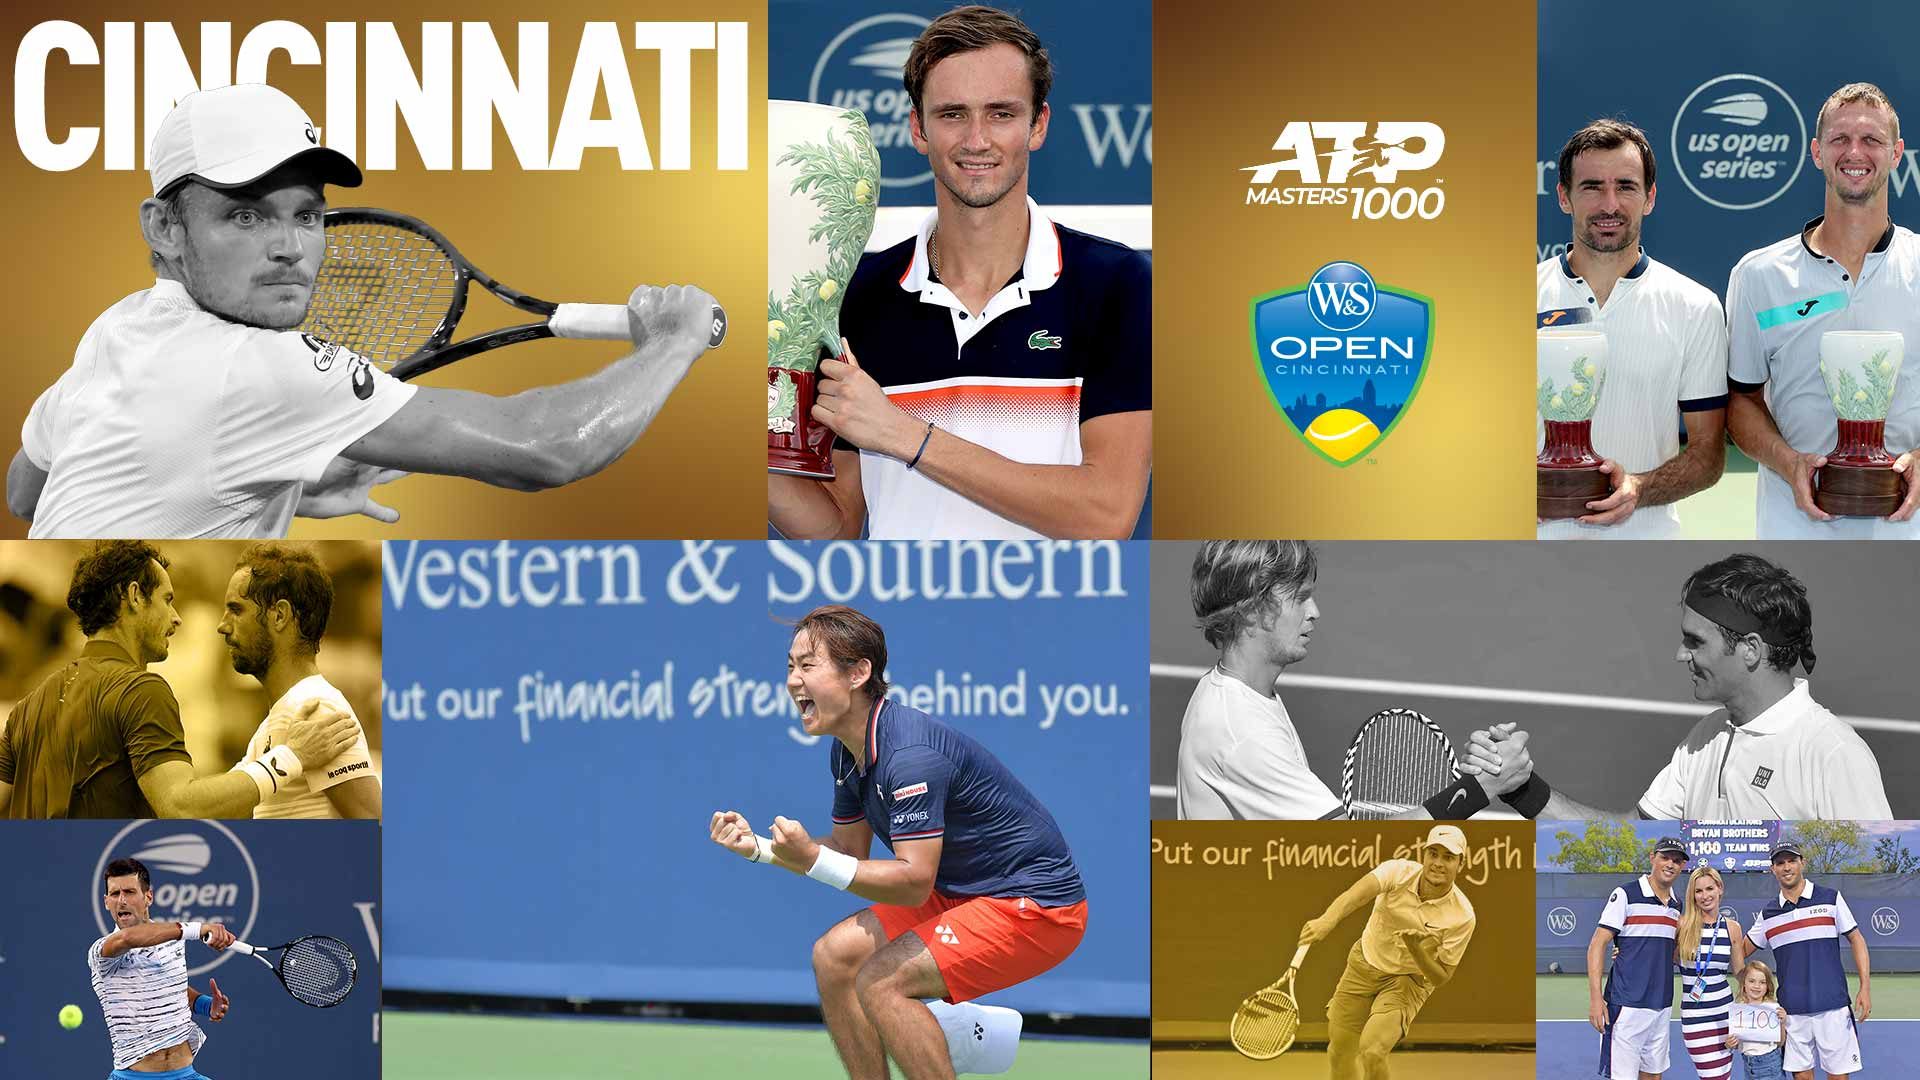 Look back at the 2019 Western & Southern Open in Cincinnati